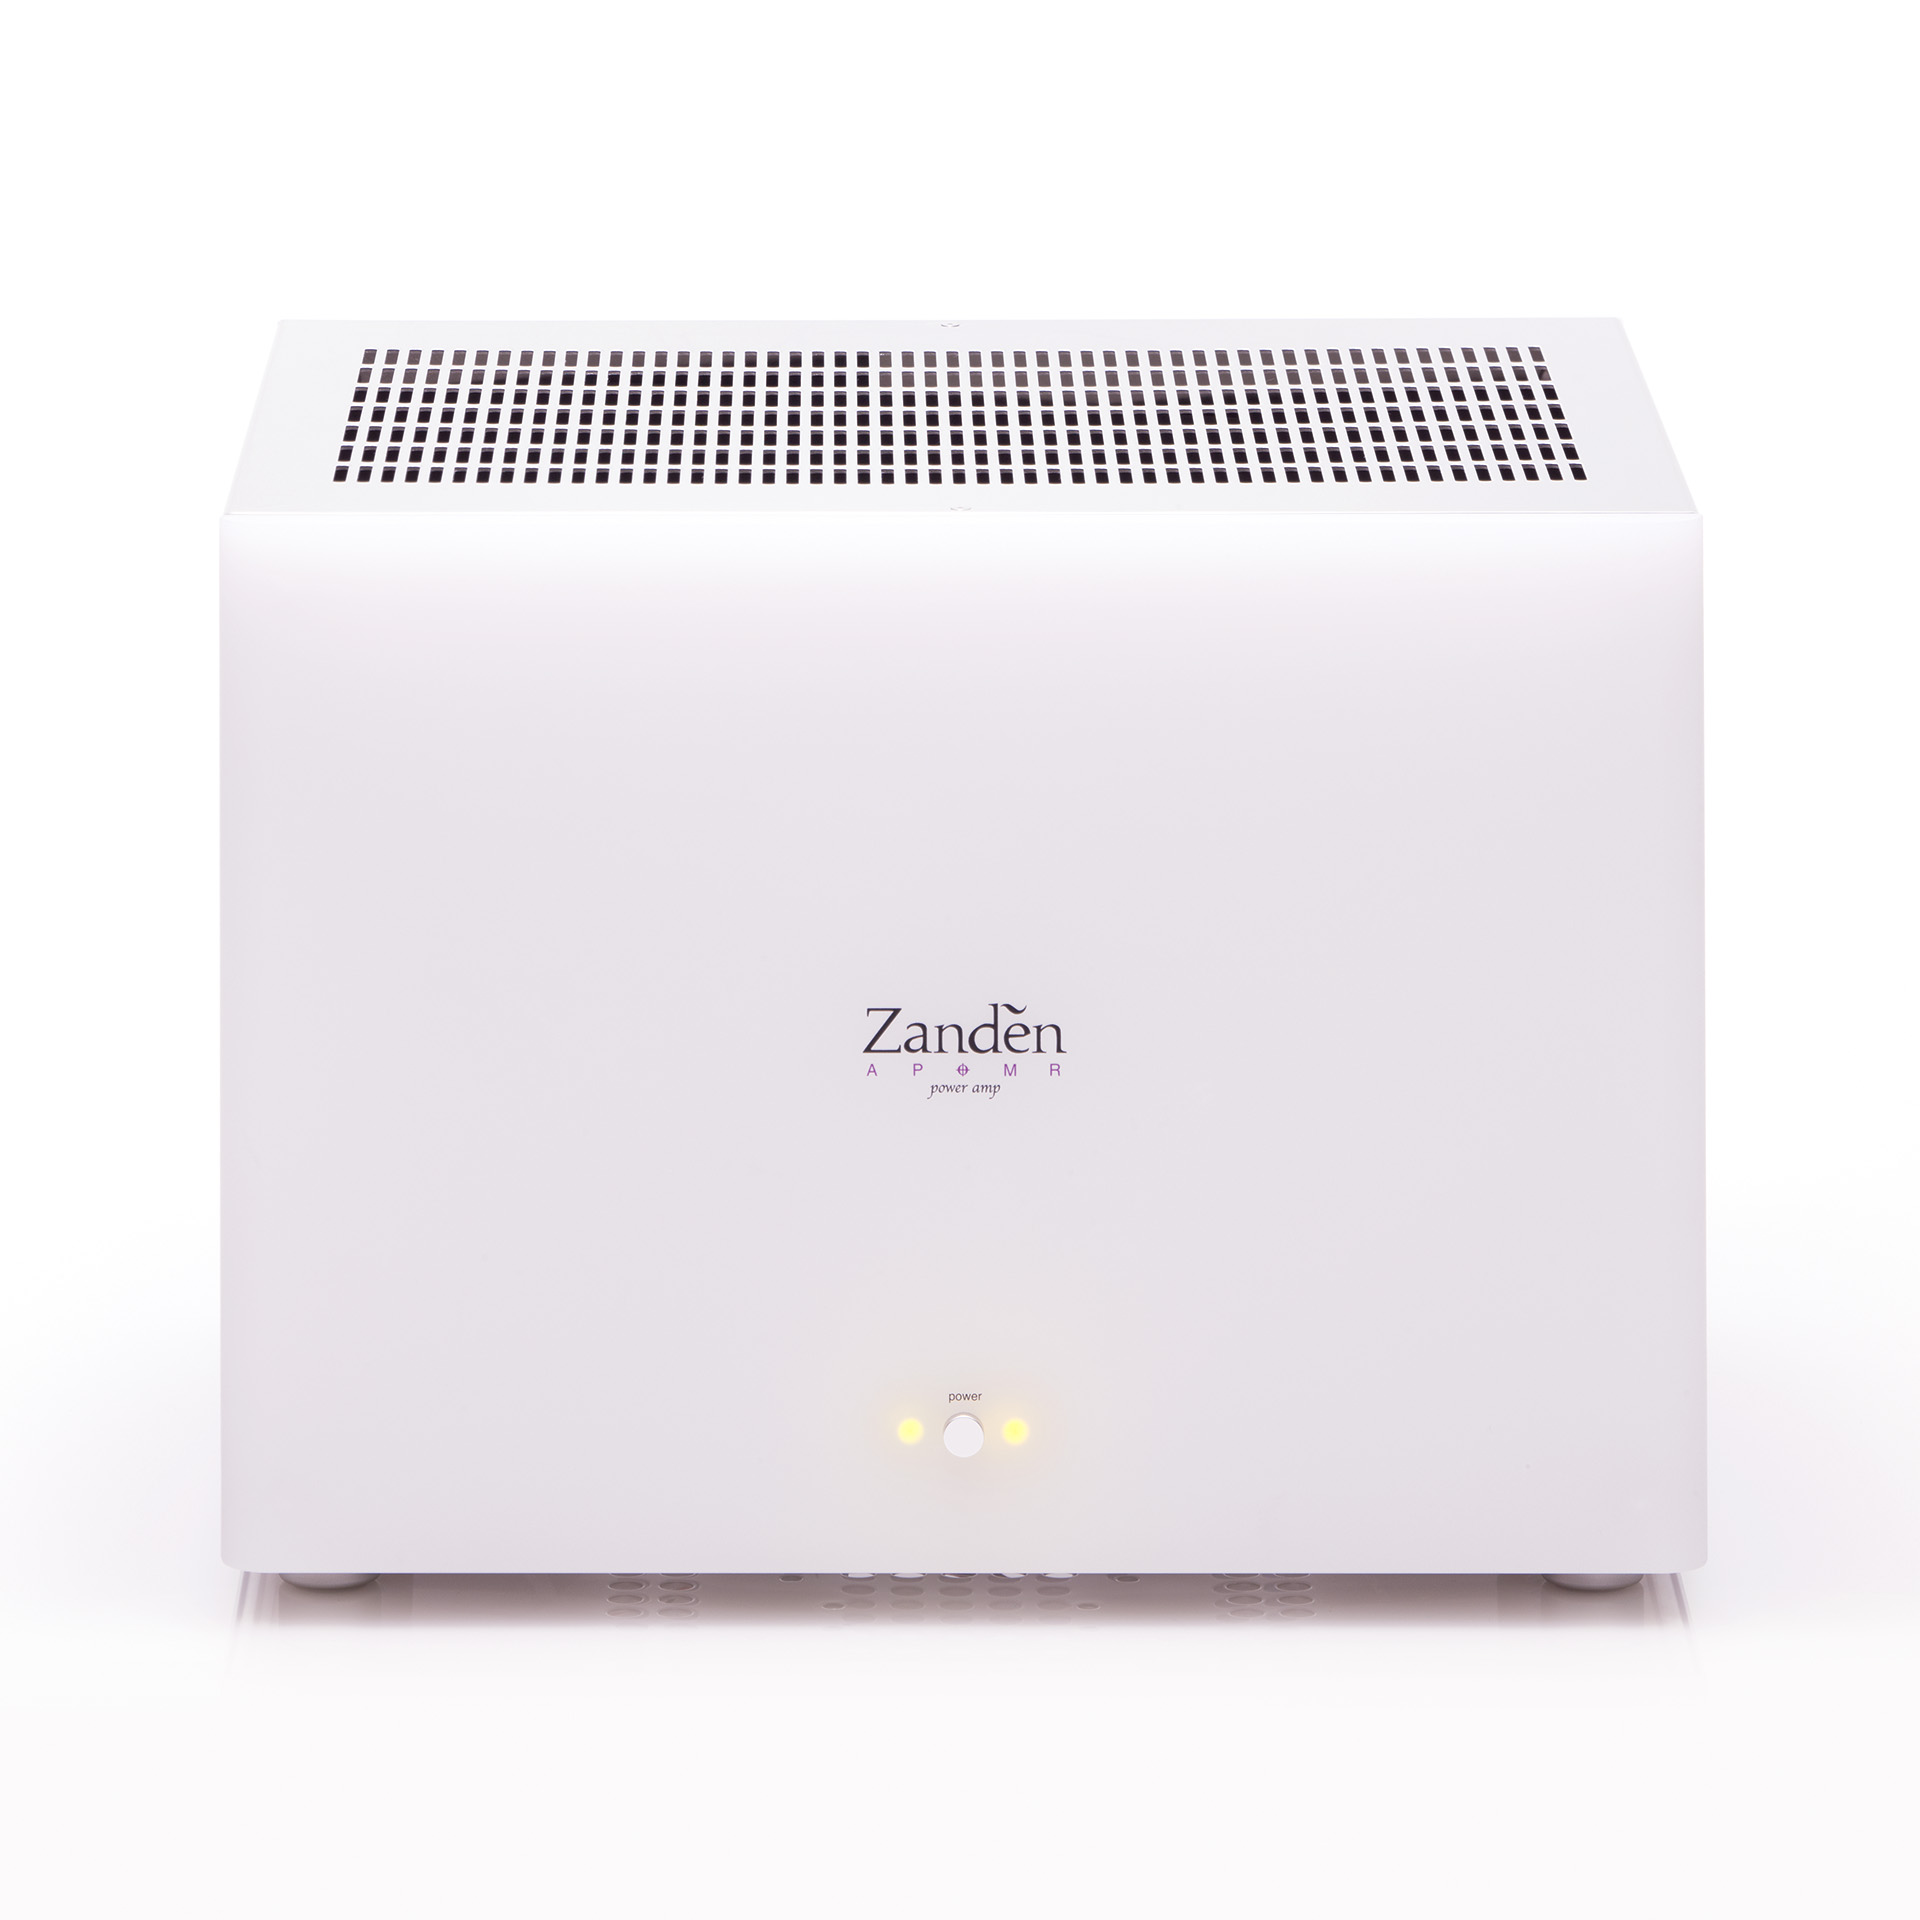 Zanden 8120 - Chattelin Audio Systems